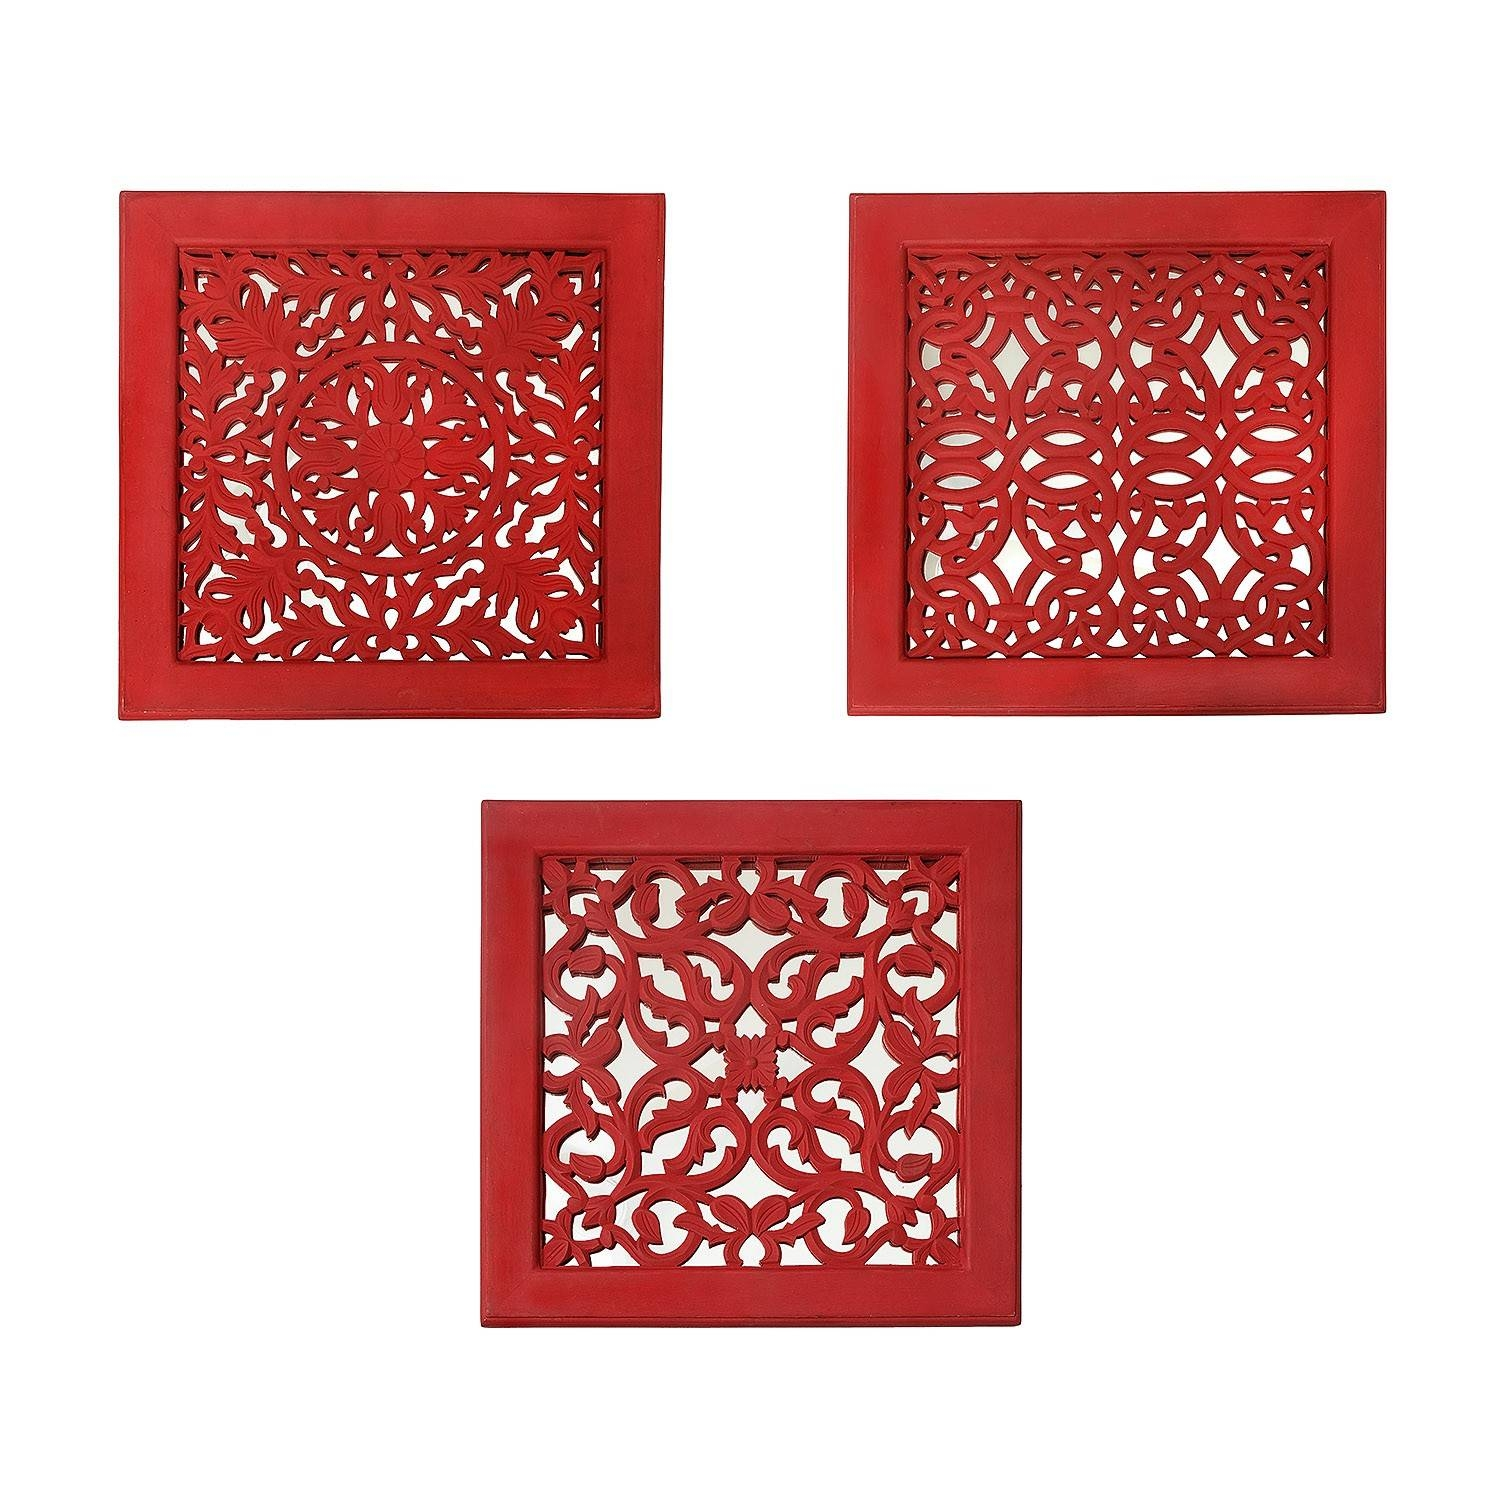 Fretwork Wall Art: Red (set Of 3) | The Yellow Door Store With Regard To Most Popular Fretwork Wall Art (View 11 of 25)